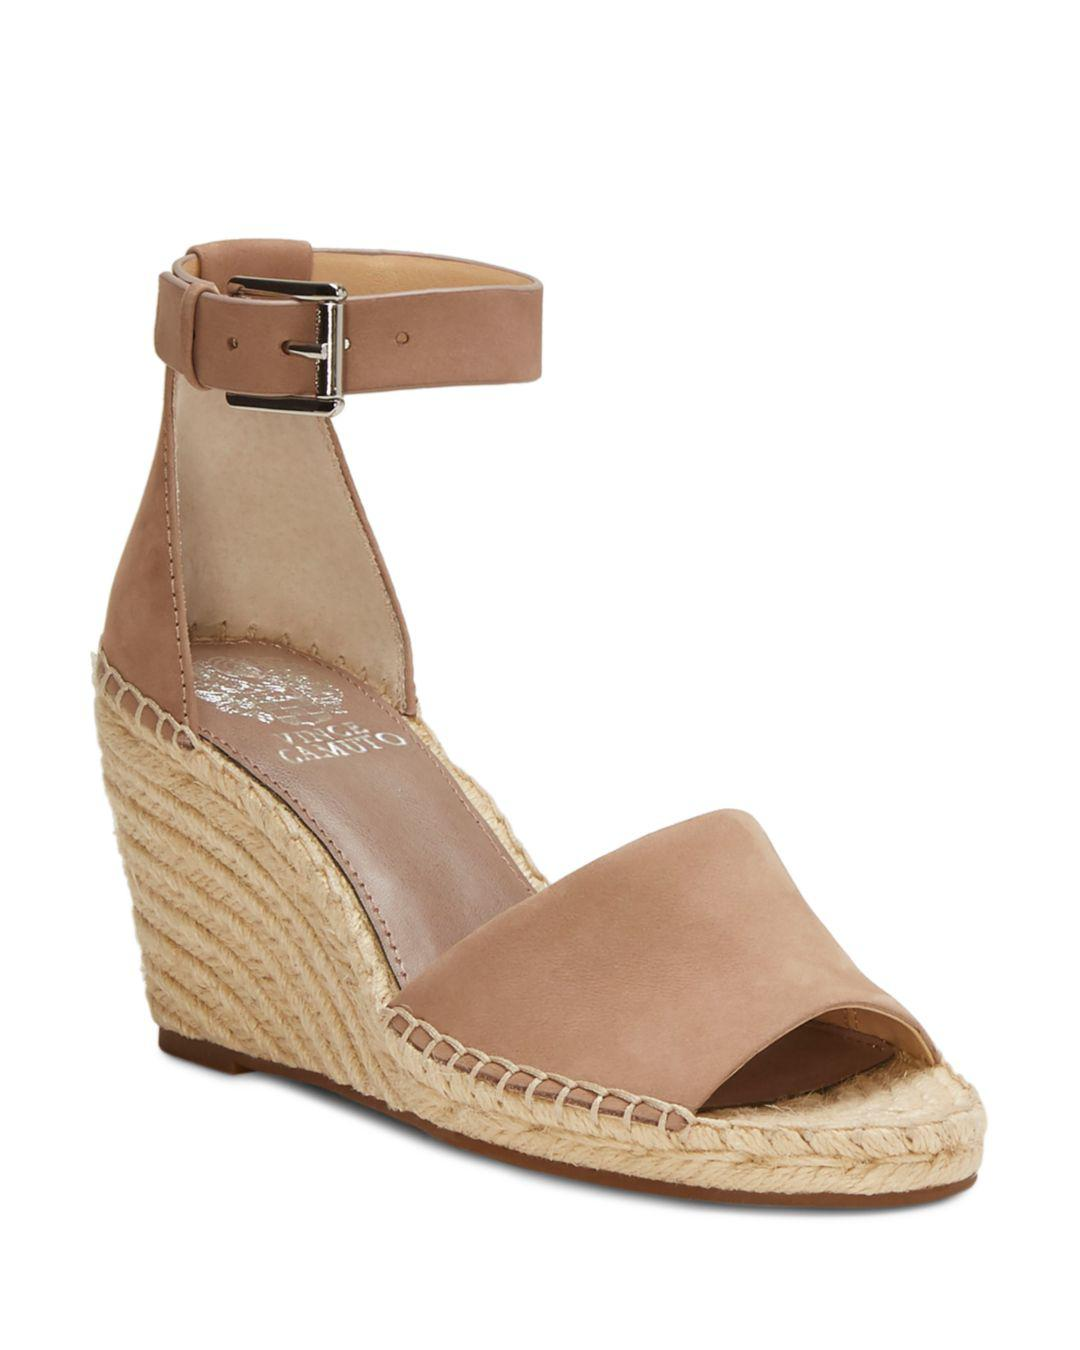 aba348a795ff Lyst - Vince Camuto Women s Leera Suede Espadrille Wedge Sandals in ...